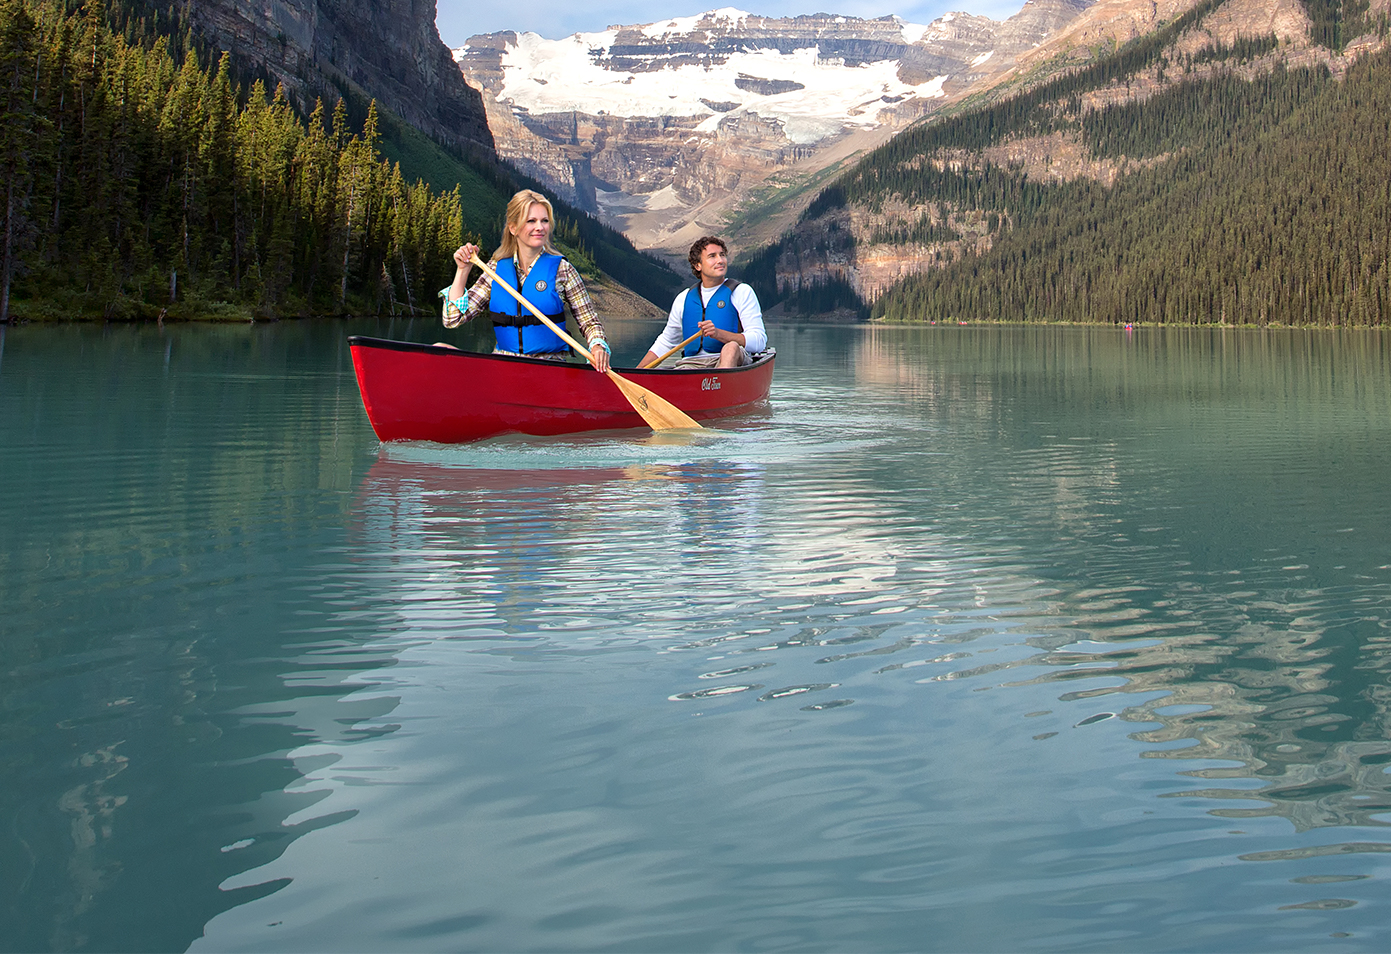 Canoe in Banff National Park, Canadian Rockies